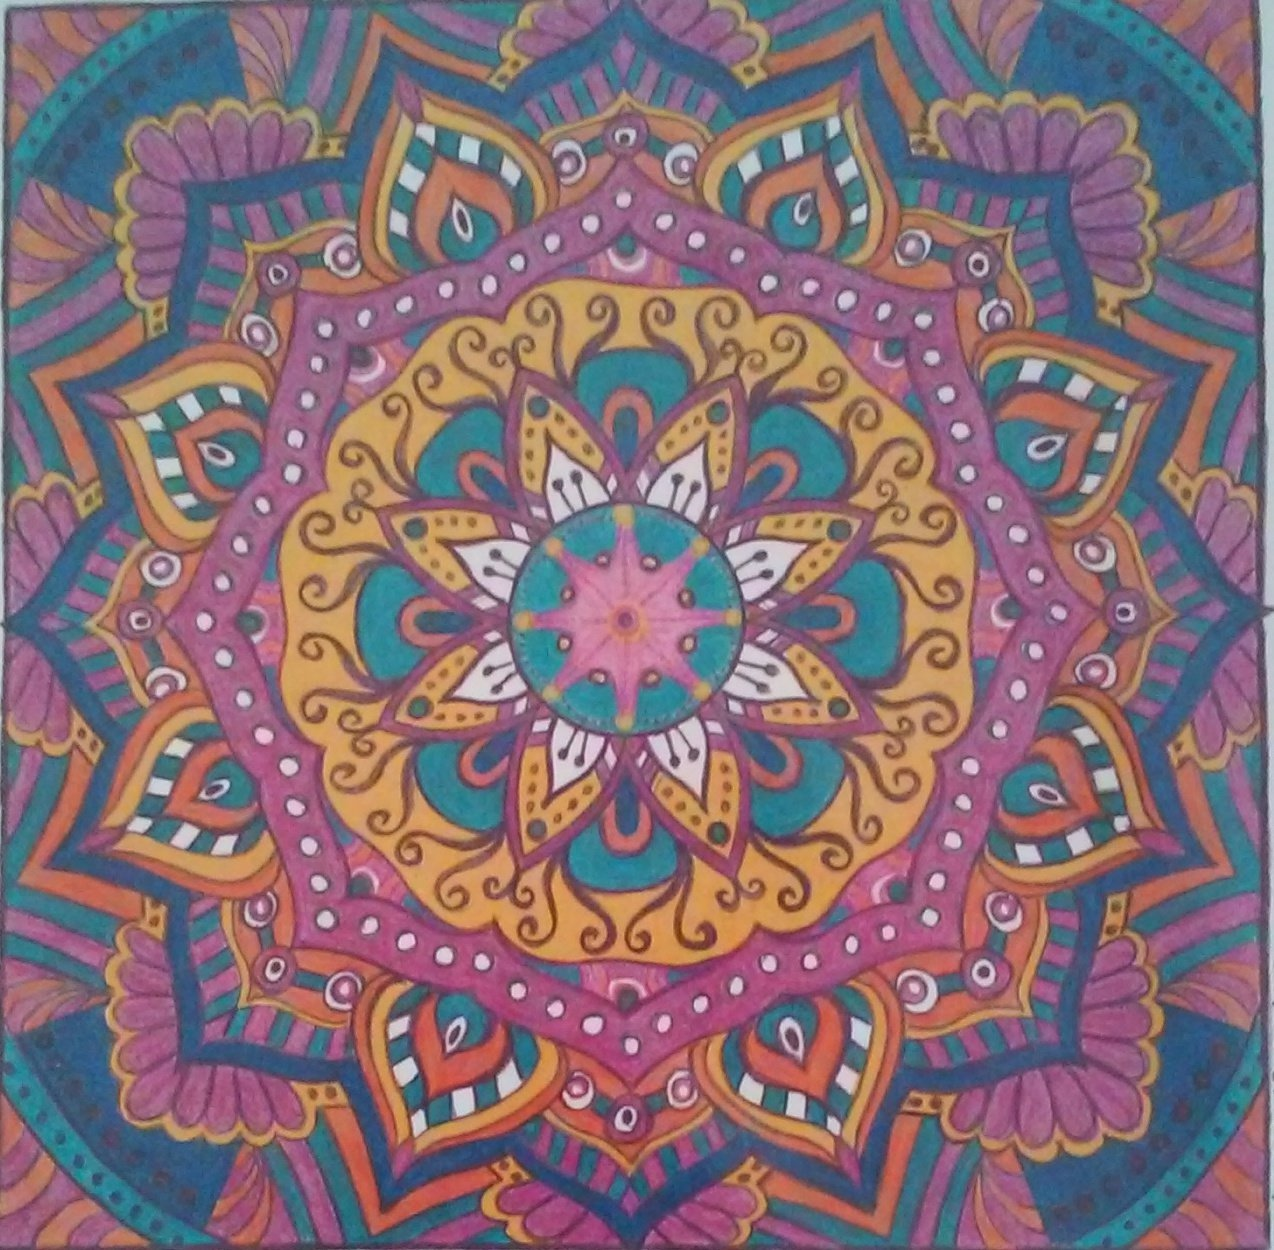 Visit Vicky Avery demonstrating the creation of mandalas at the Las Cruces Arts Association show at Cruces Creatives on Sept. 15.